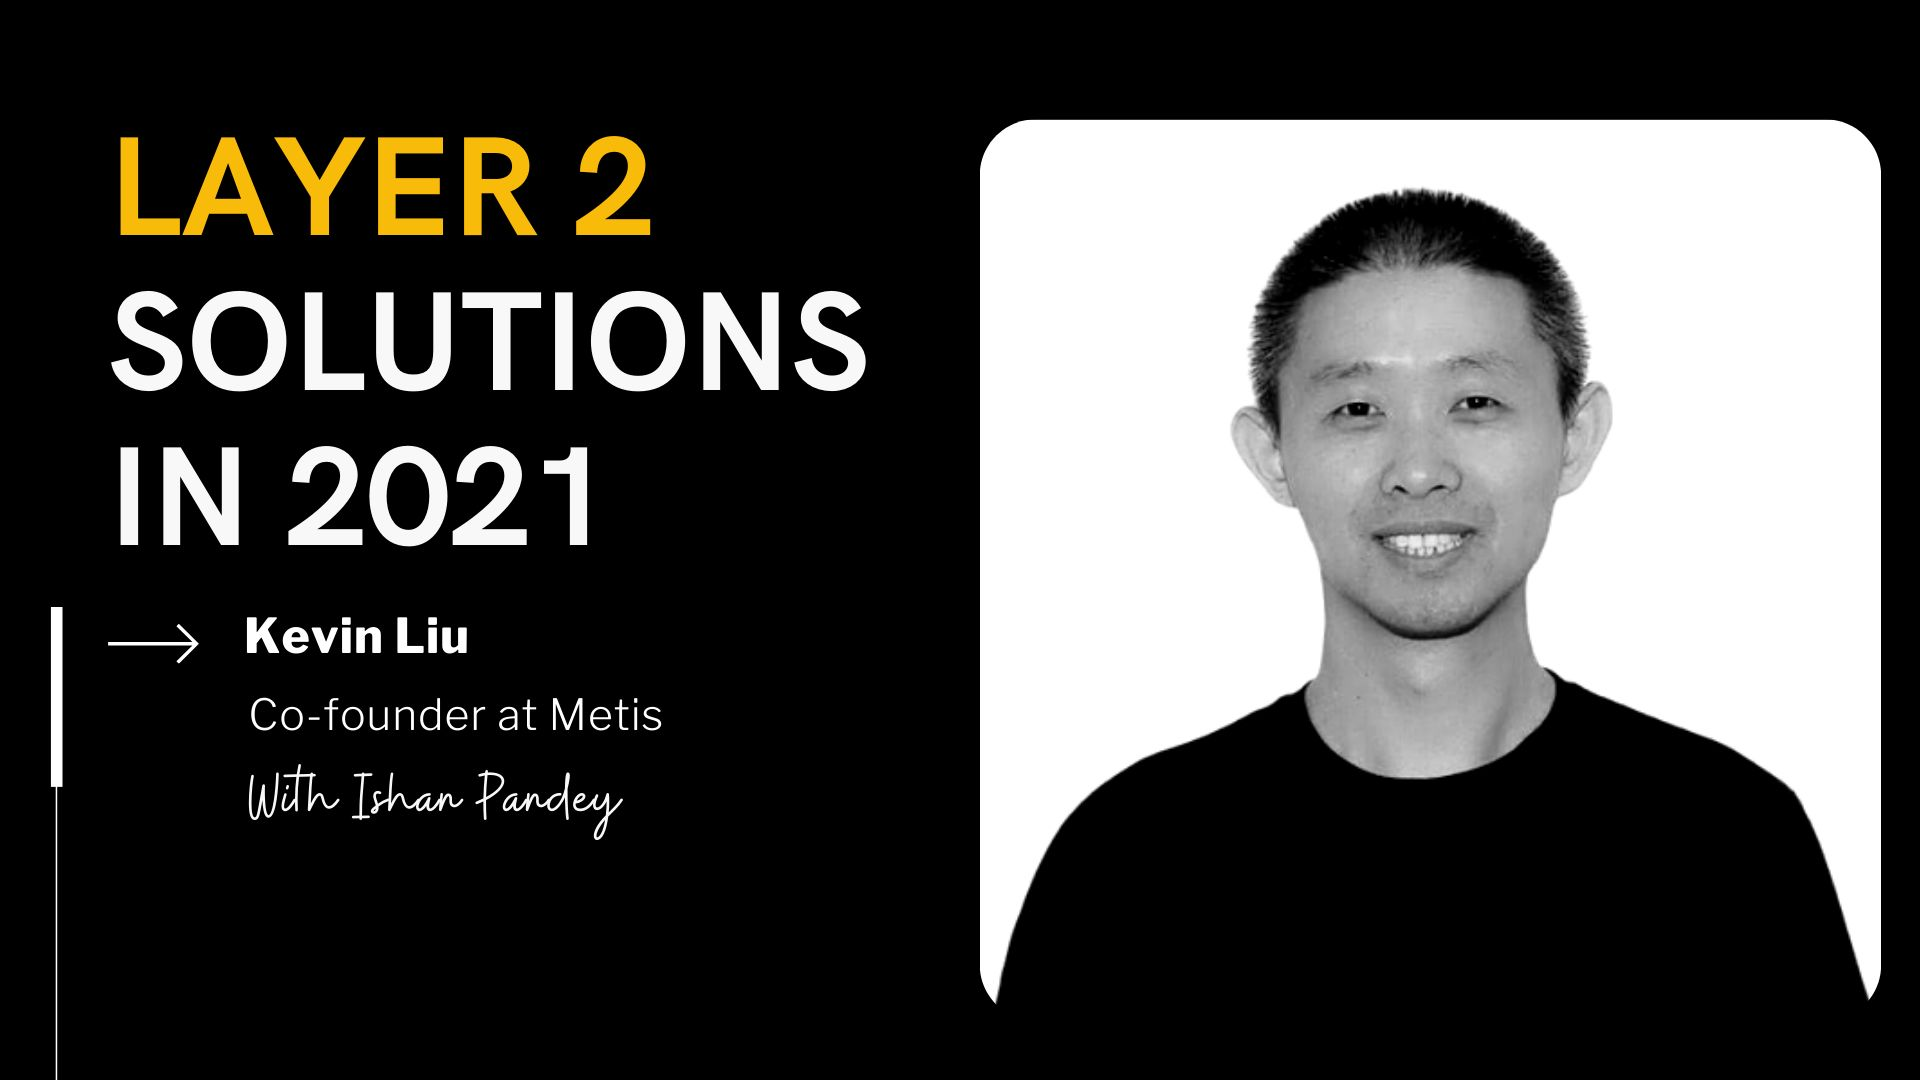 /rollups-incentivize-operators-to-verify-and-execute-transactions-correctly-kevin-liu-4m3g35ek feature image